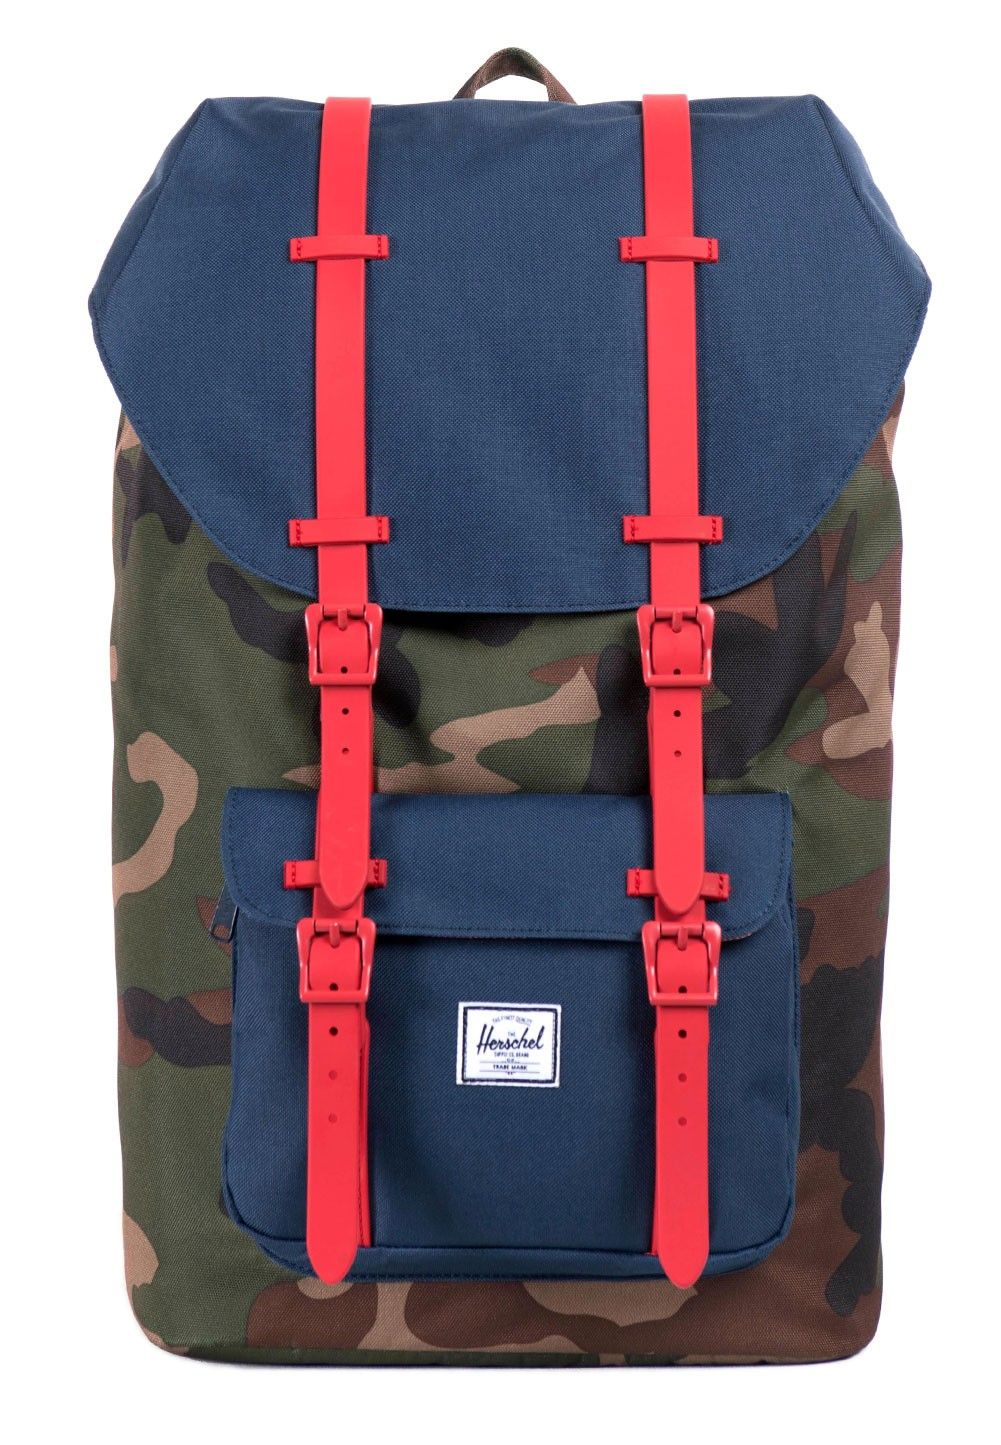 dafdca8851 Herschel    Little America Backpack with Rubber Straps